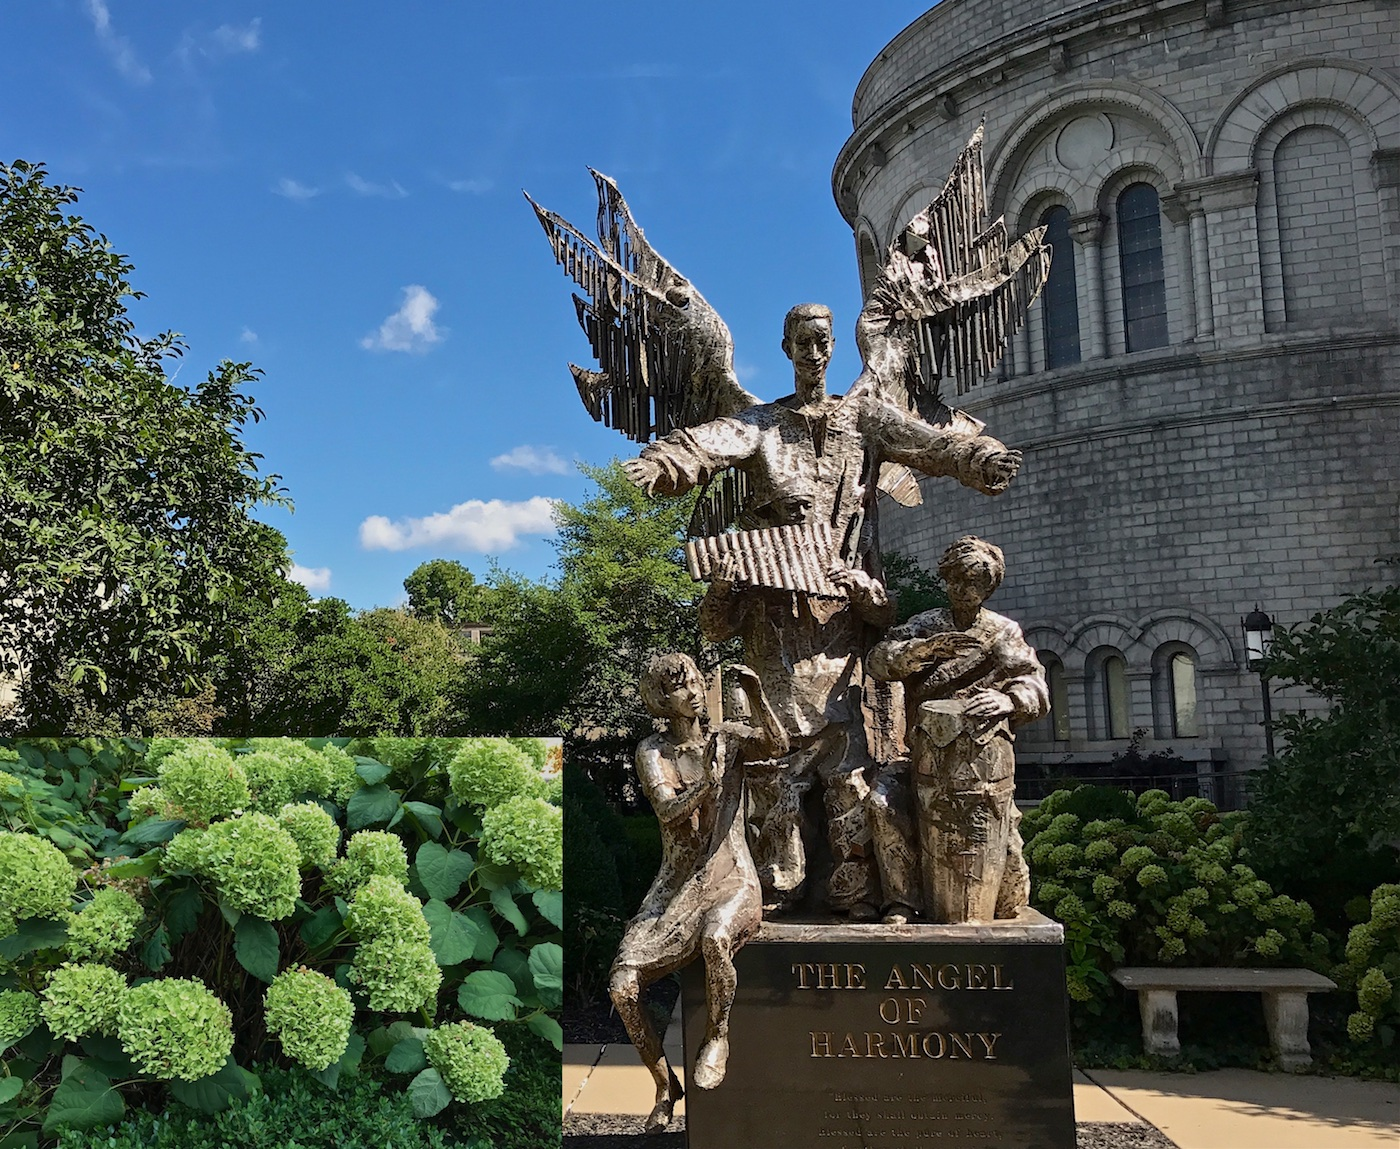 Color photograph showing a bronze sculpture of an angel whose wings are made of many loosely attached pipes that ring pleasantly in the wind. Three children are playing instruments under the stretched out arms in front of the angel. A boy standing in the center plays a pan flute. On his right side, a girl with a bell sits on the ground plate of the sculpture, letting her legs dangle over the sides of the black marble pedestal. On the opposite side a boy plays a tall conga drum. Green flowering hortensia provide the backdrop for the sculpture. A close-up photograph of them is inset at the bottom left corner of the image.